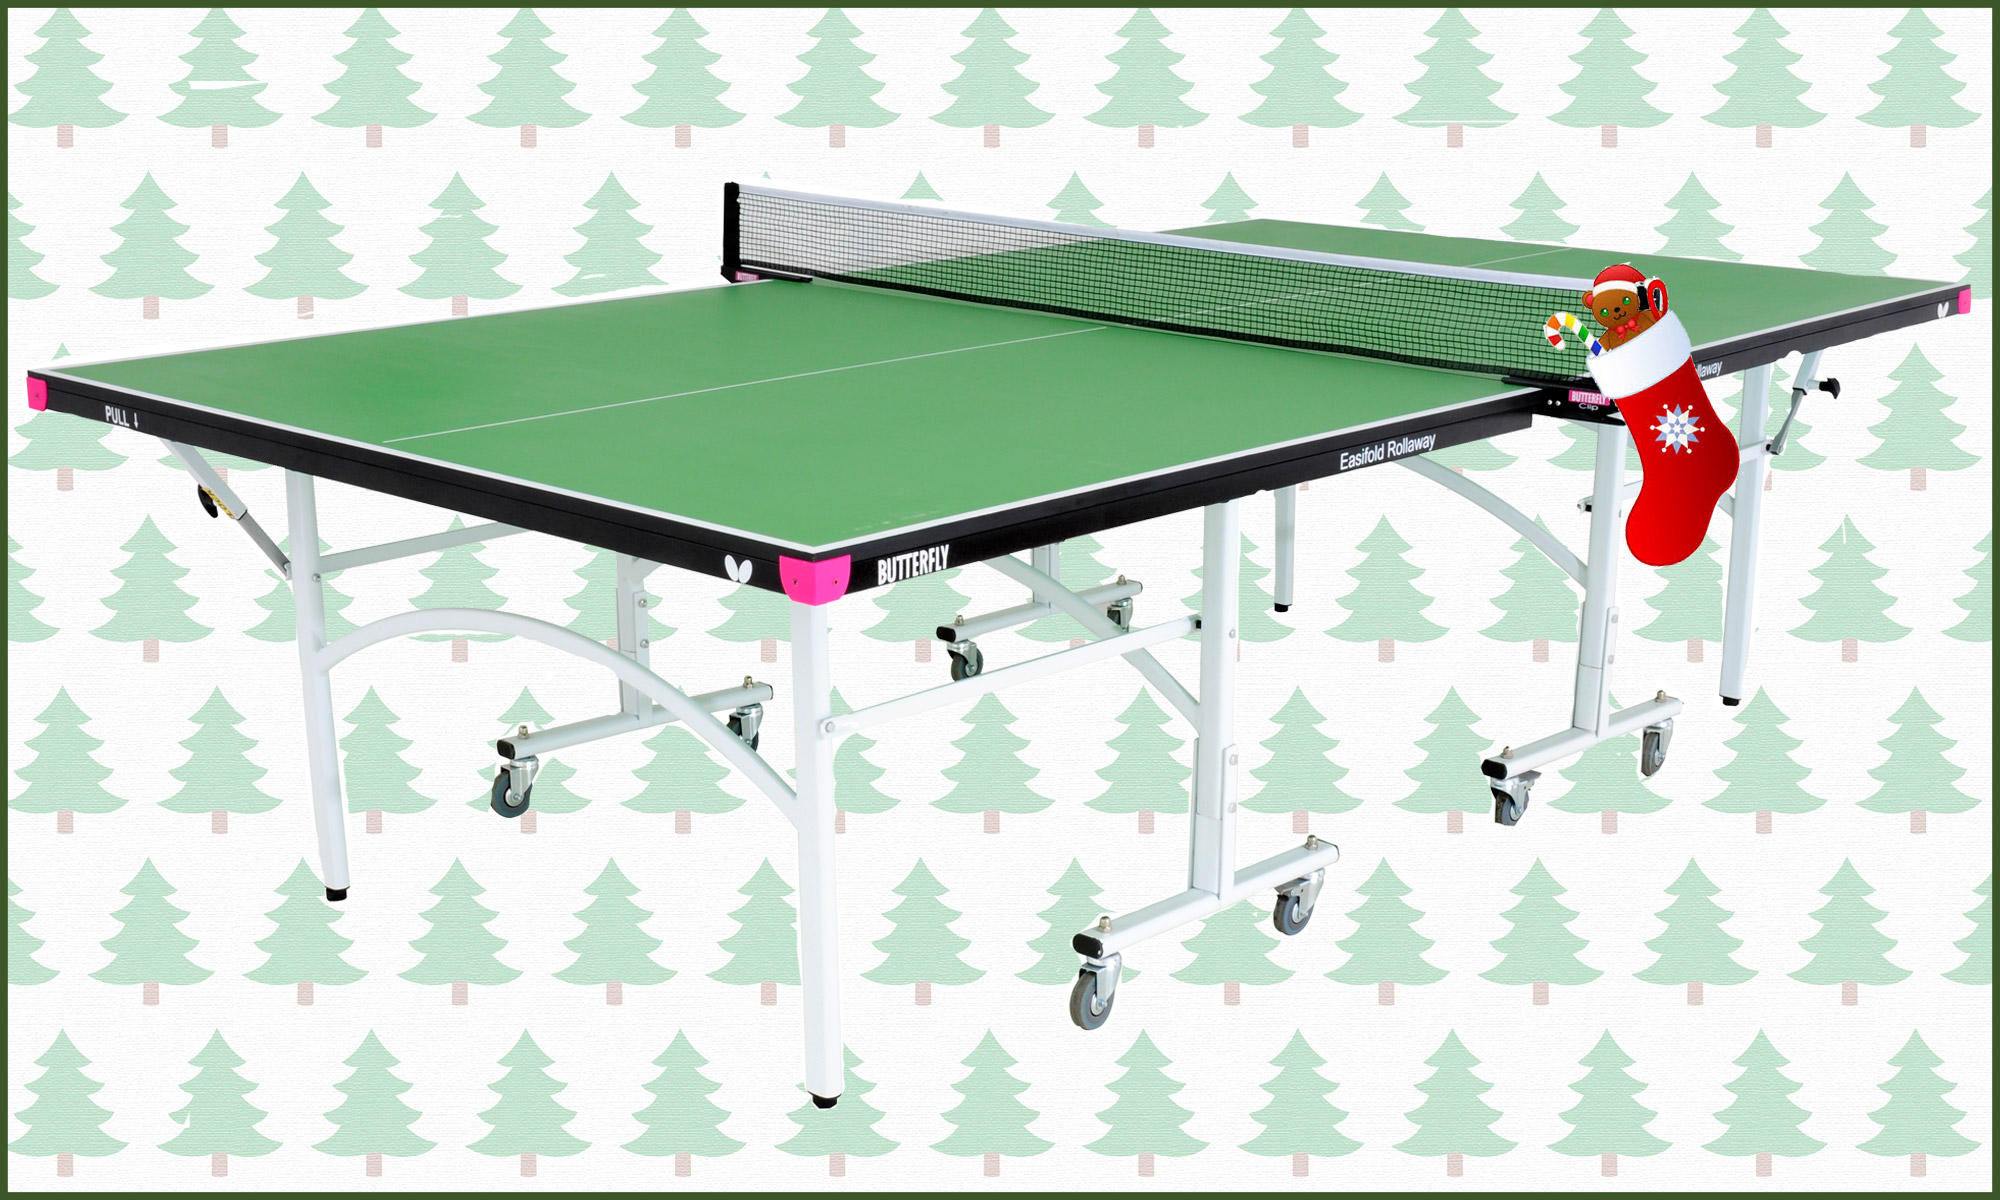 Butterfly Easifold 19 Indoor Table Tennis Table